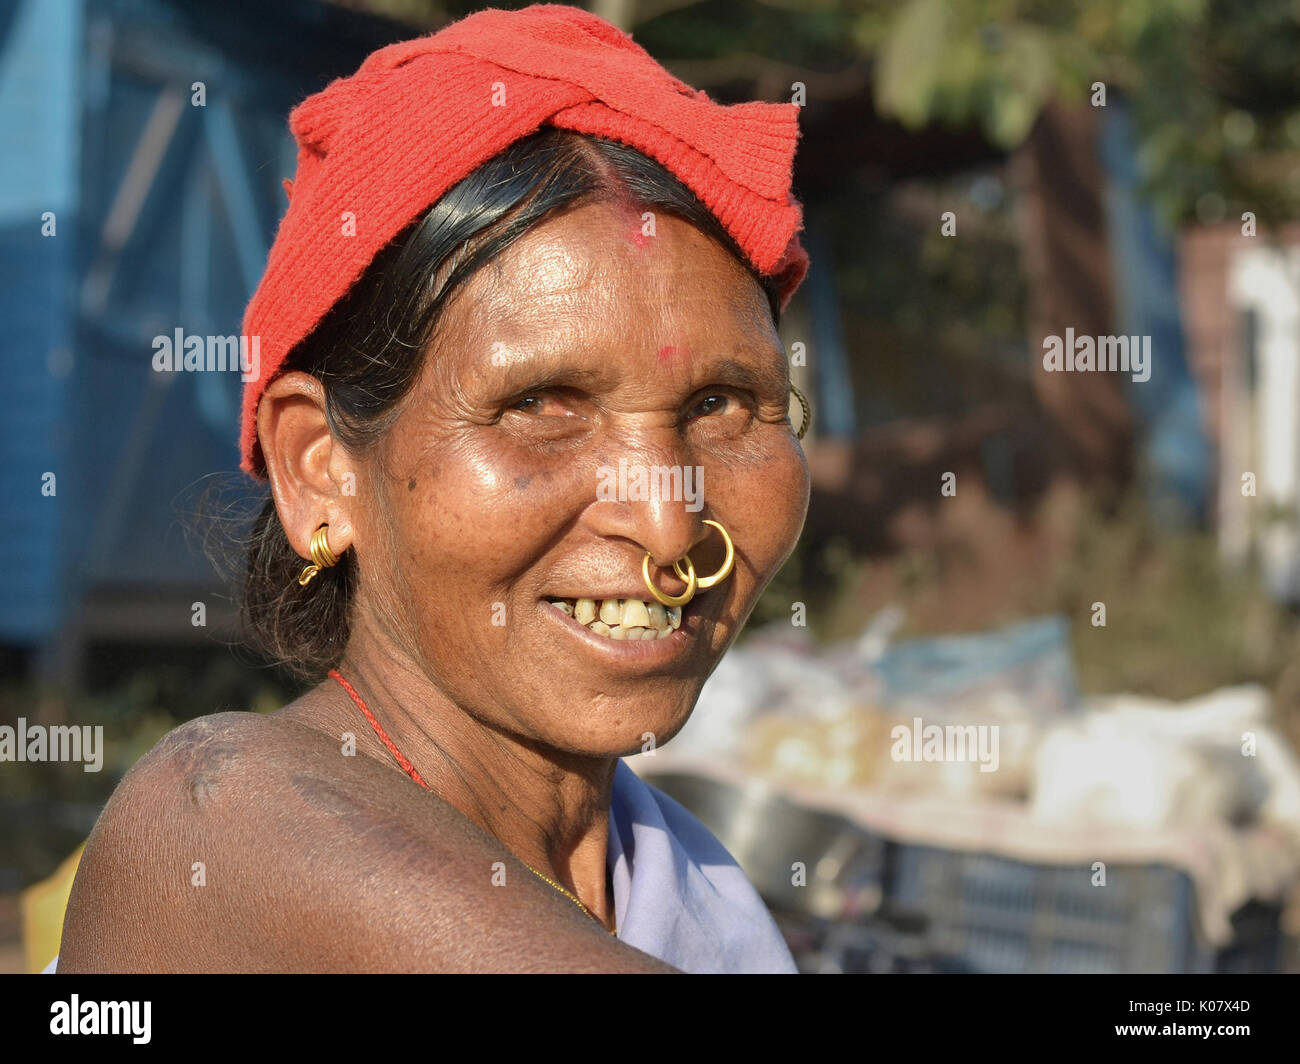 Elderly Indian Adivasi market woman with two golden nose rings and distinctive tribal earrings. Stock Photo